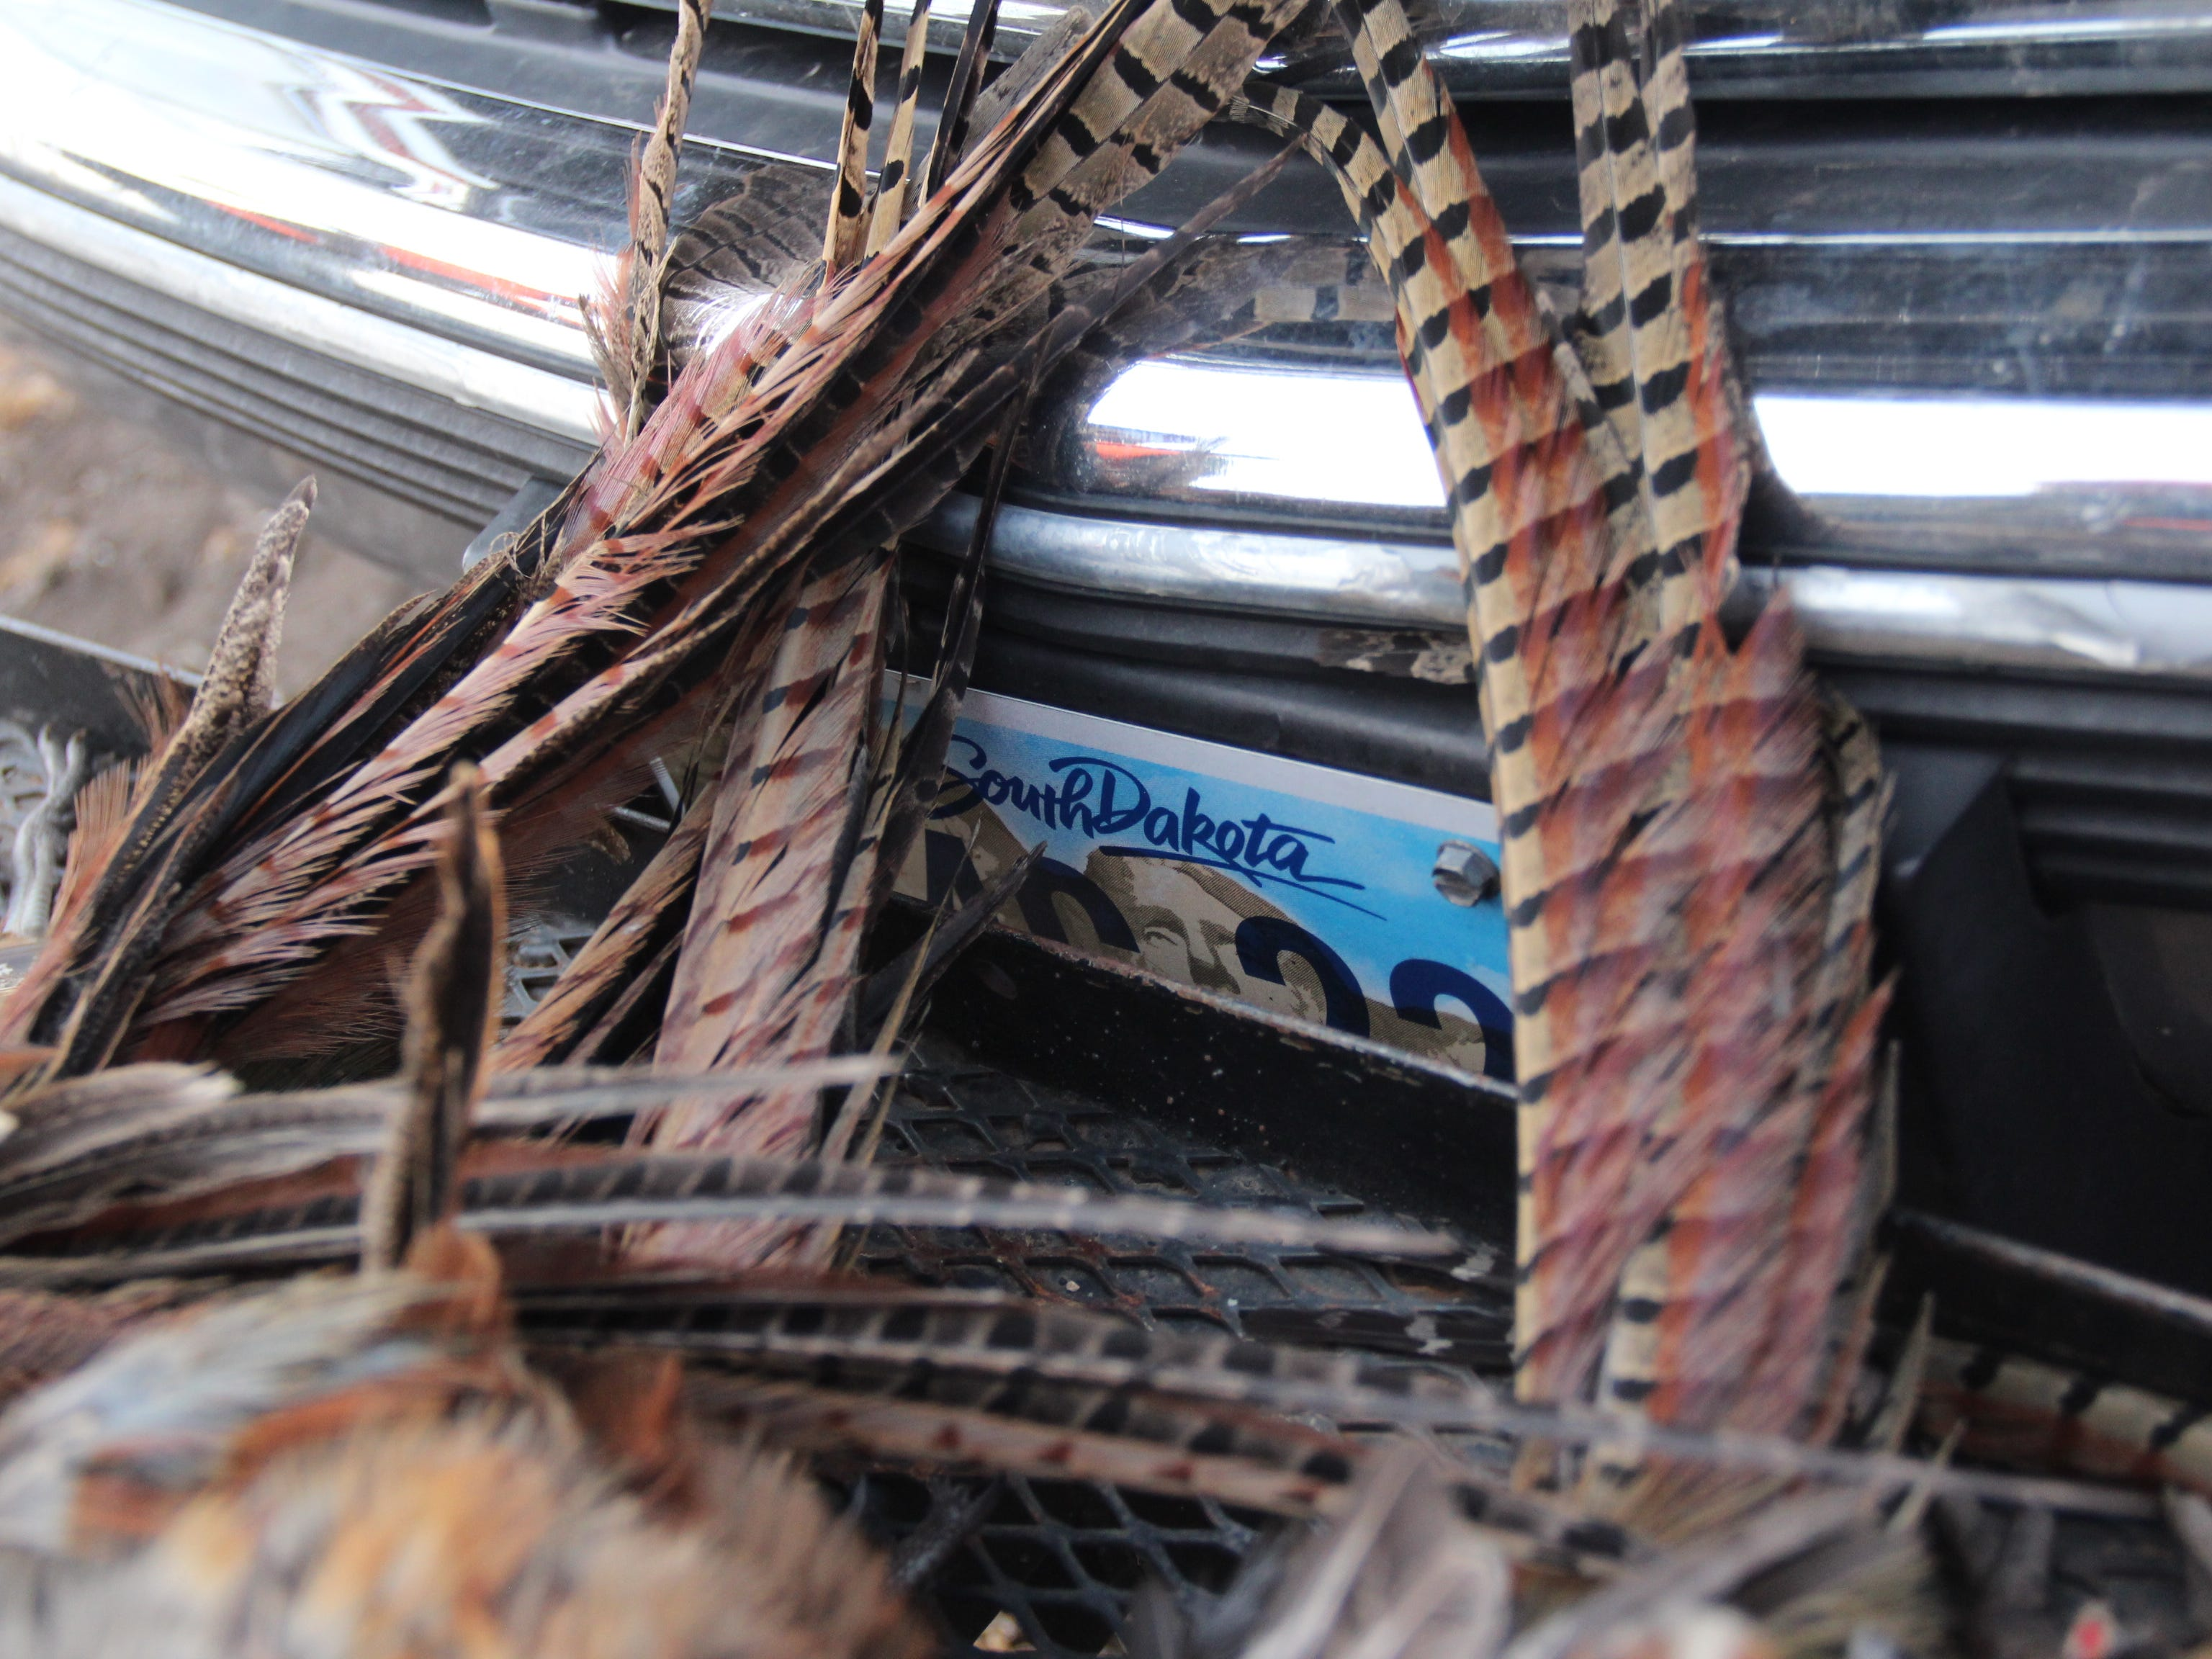 Tail feathers of cock ring-necked pheasants frame a license plate on the front of a vehicle during a November, 2018 hunt near Aberdeen, South Dakota.